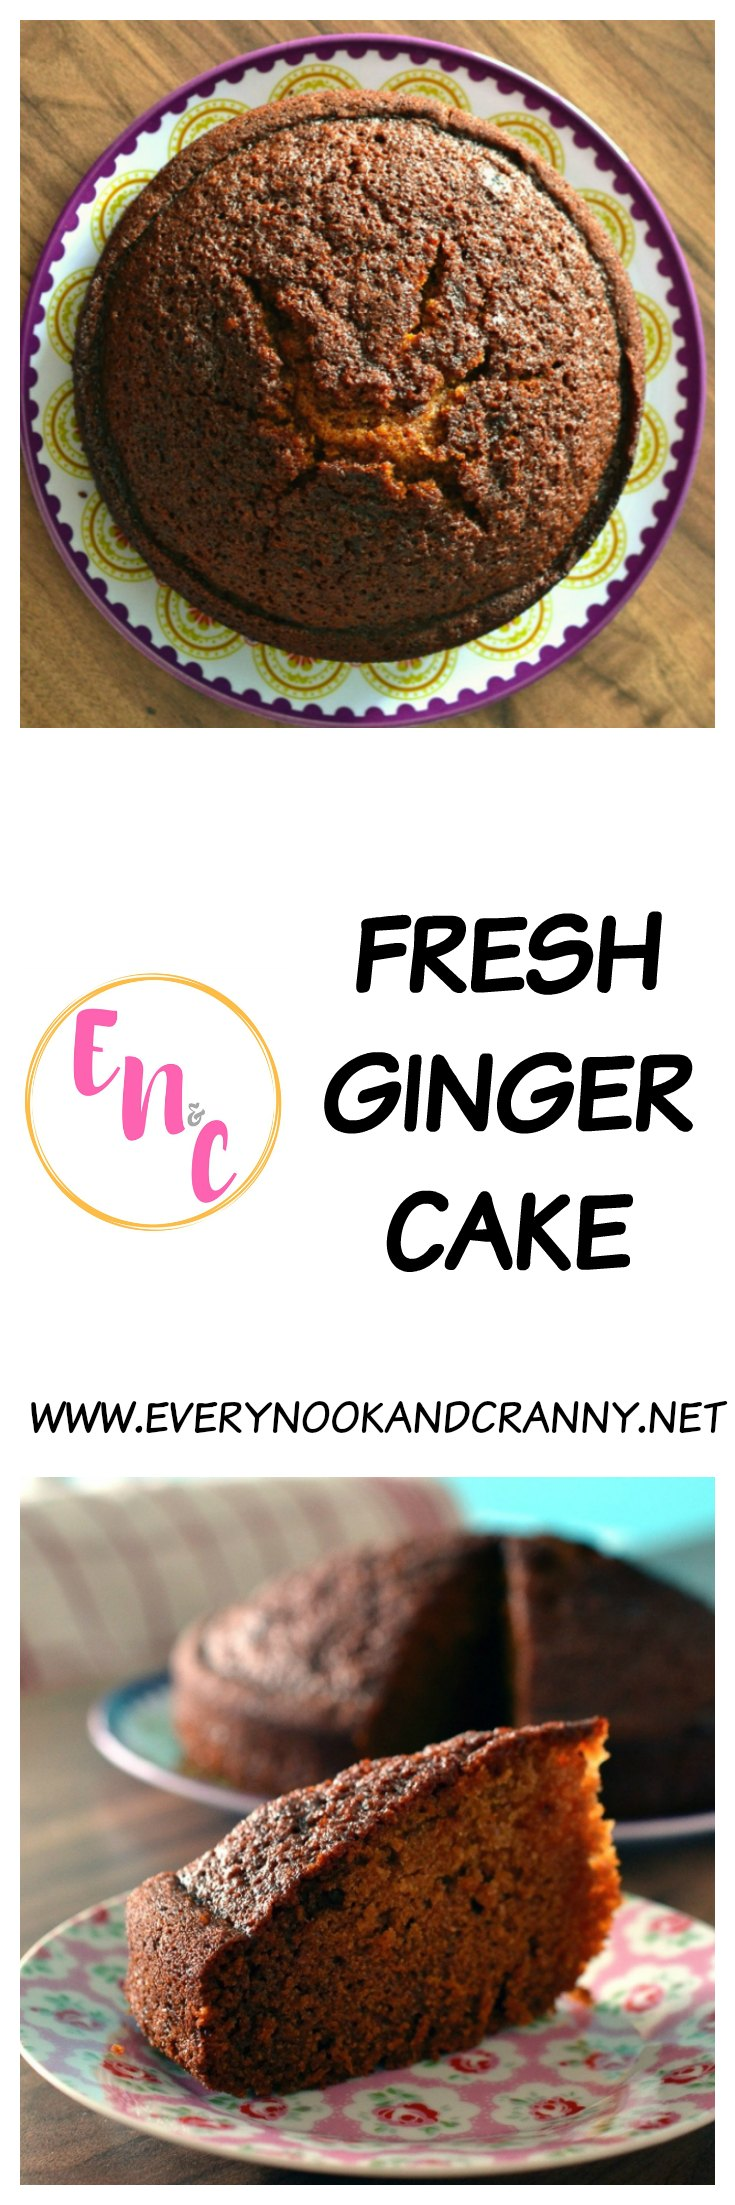 Fresh ginger cake with the added spiciness of freshly cracked black pepper too.